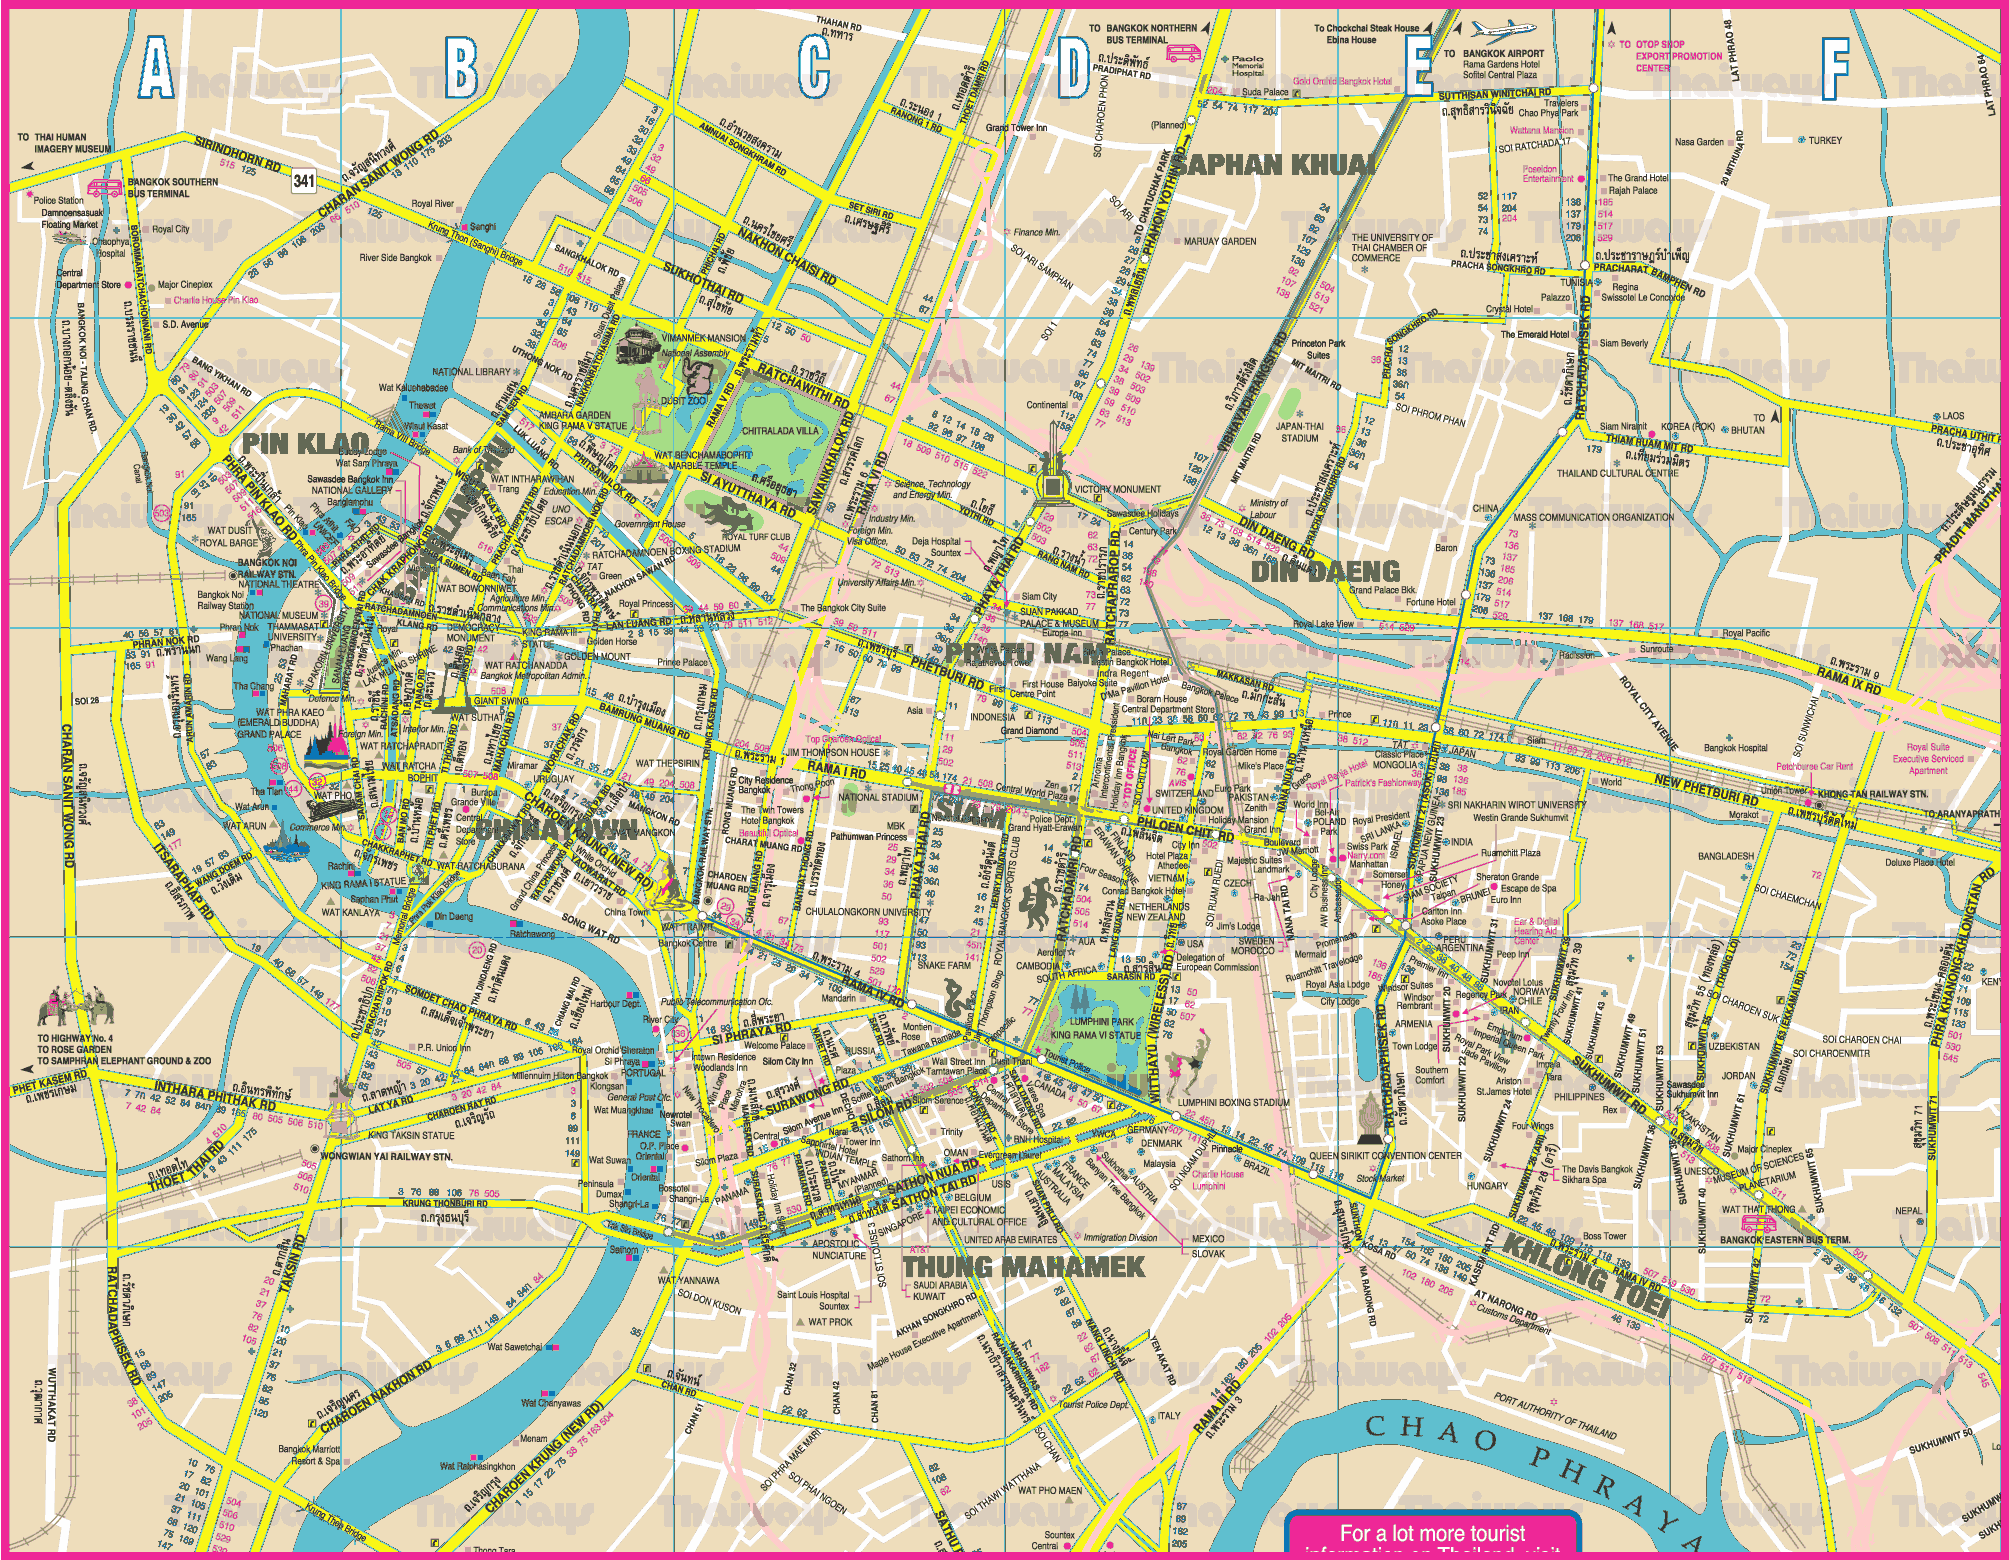 Bangkok Map - Detailed City and Metro Maps of Bangkok for Download ...